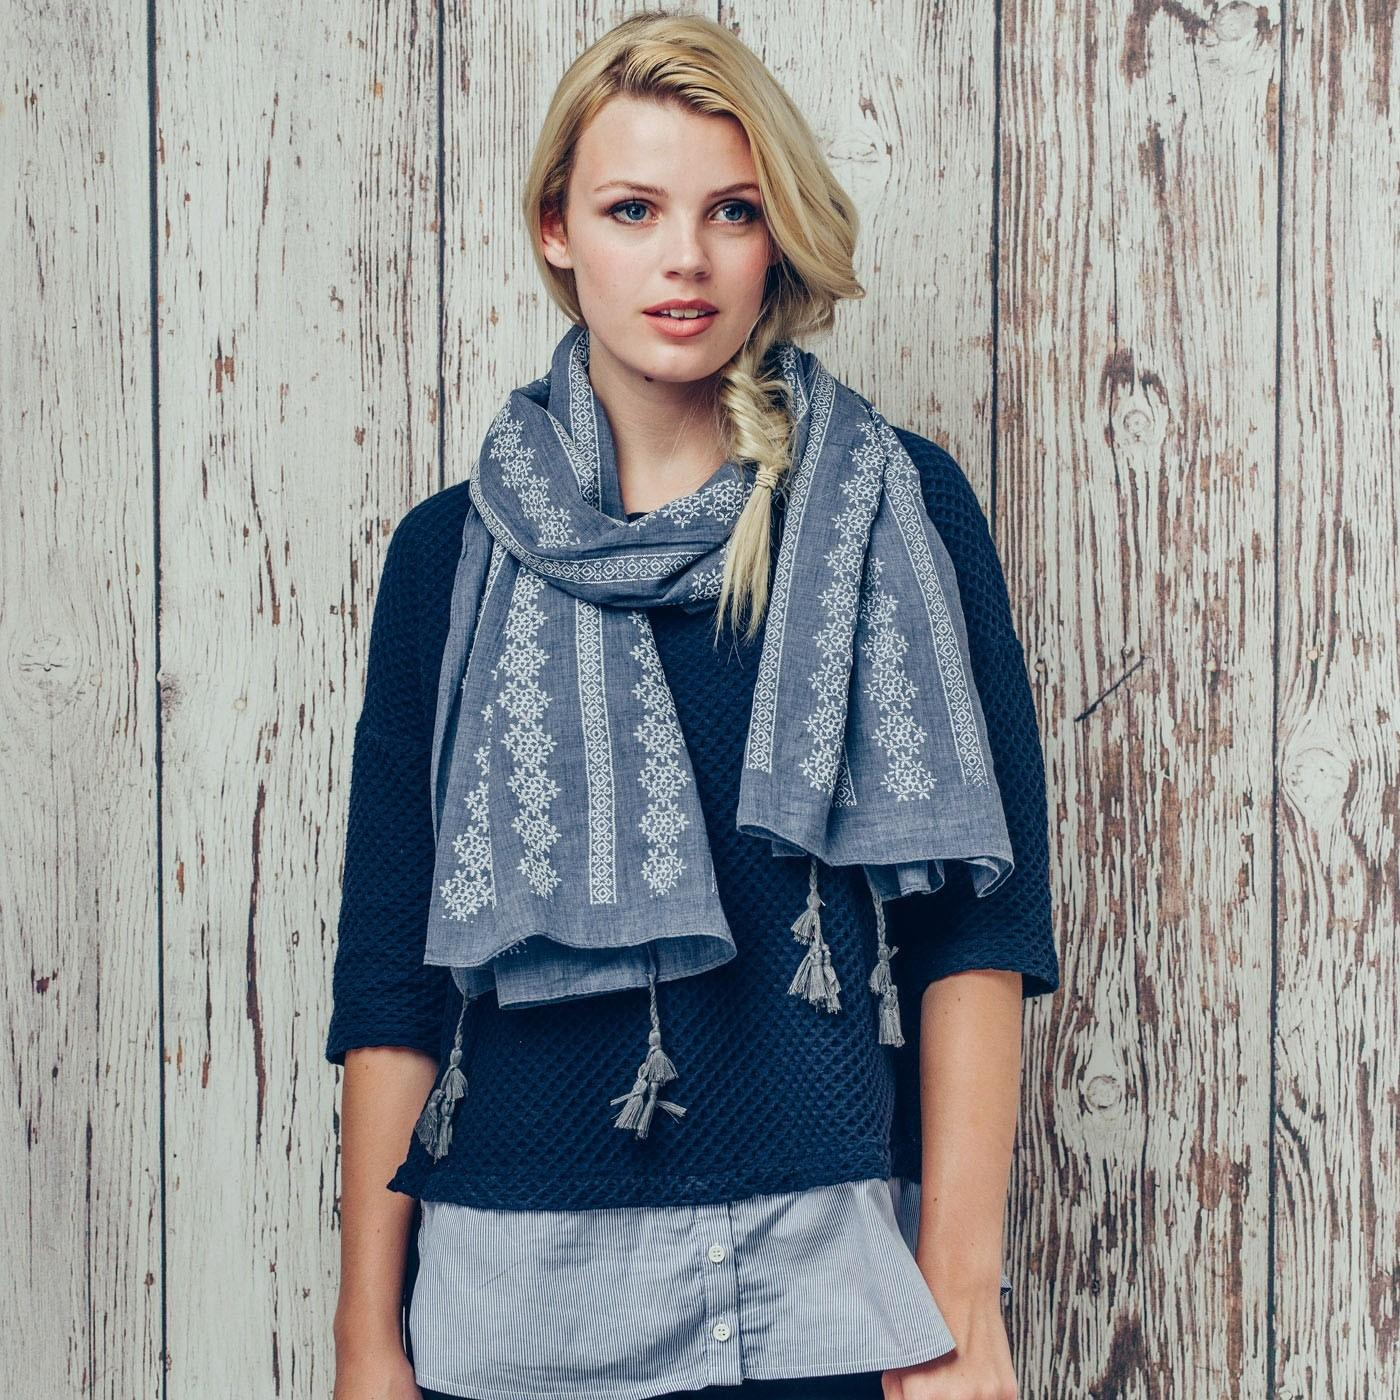 kelly daisy scarf in grey